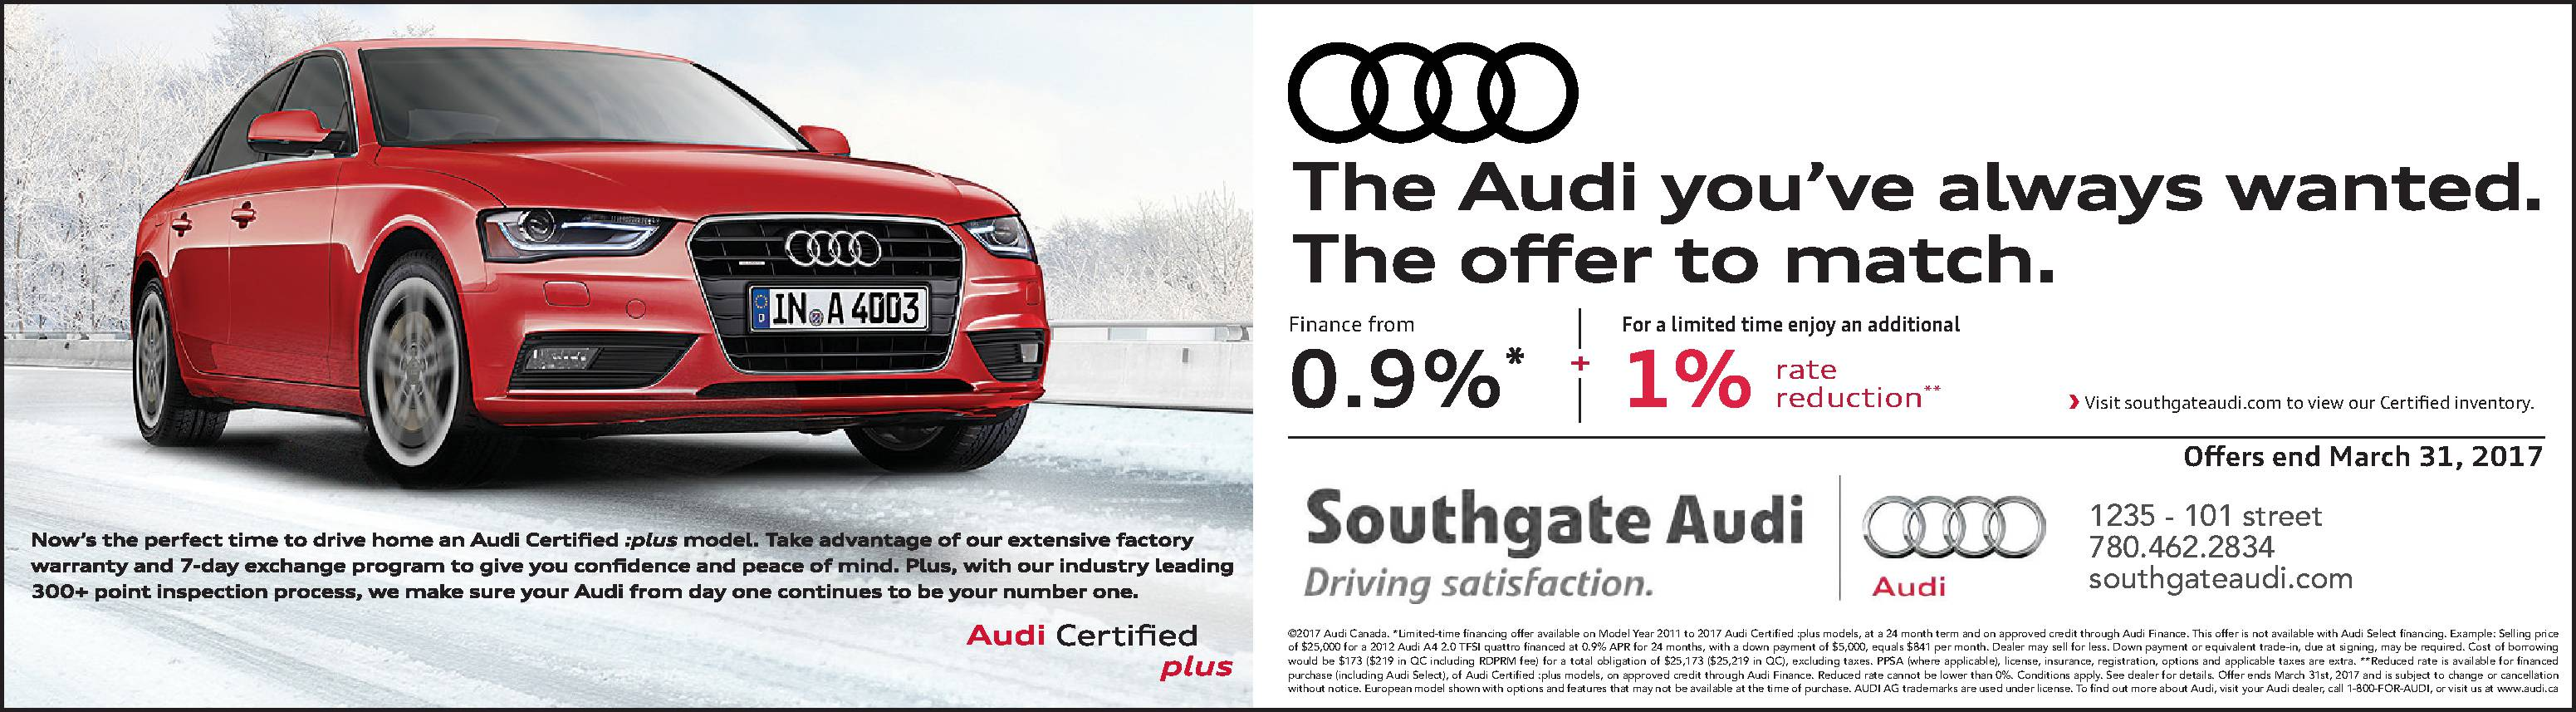 Audi Incentives March 2017